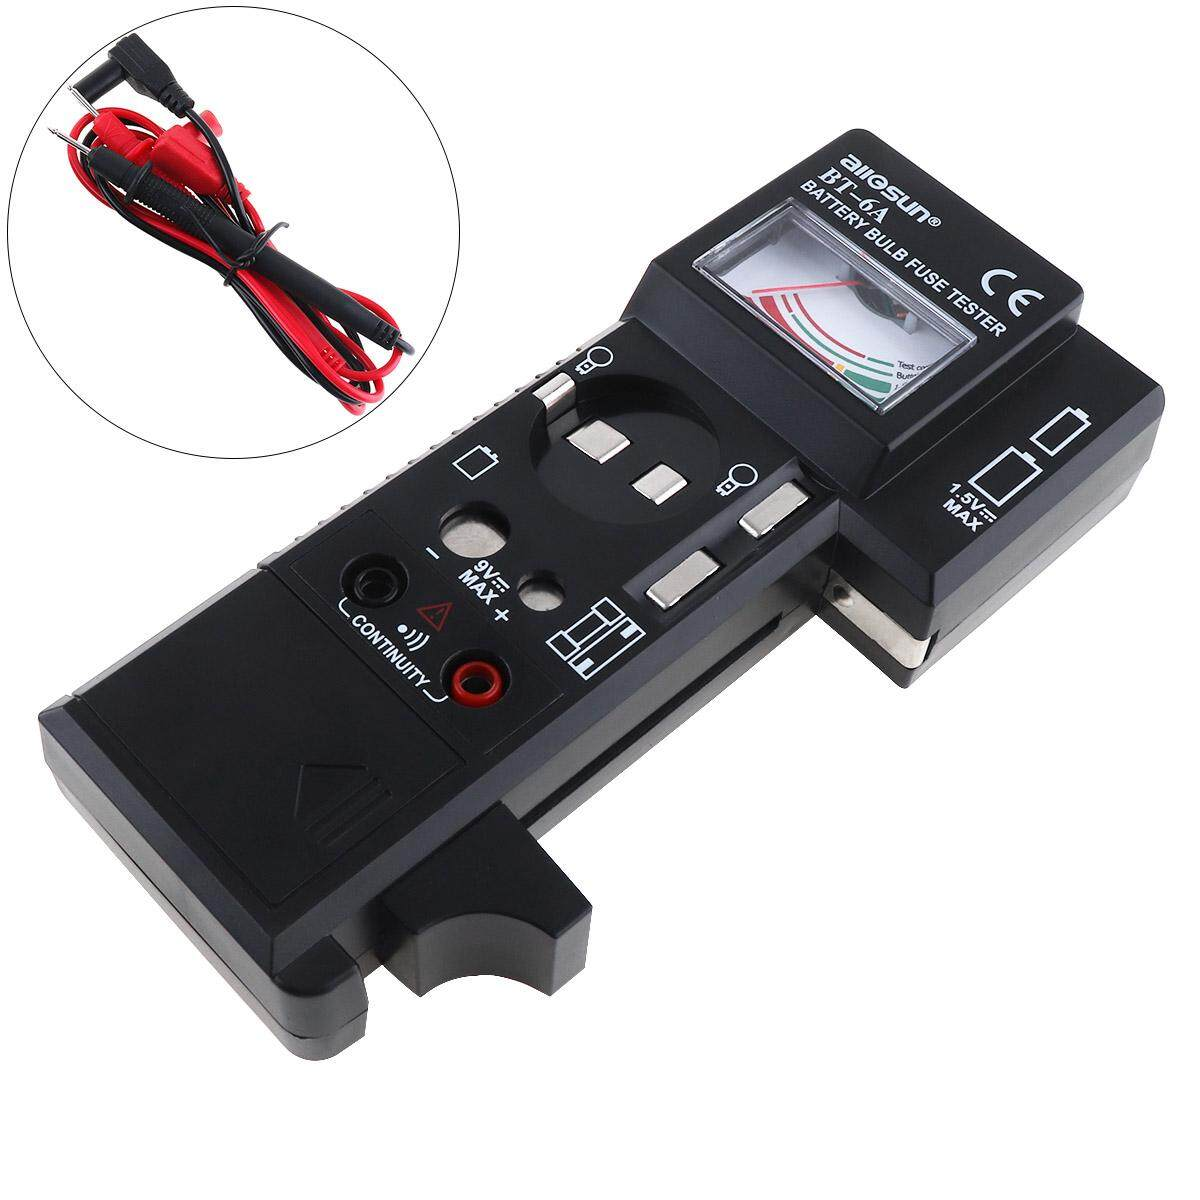 Portable BT6A 3 IN 1 Digital High Precision Multi-purpose Battery Bulb Fuse Tester with One Pair Test Pen for Battery / Light Bulb / Fuse